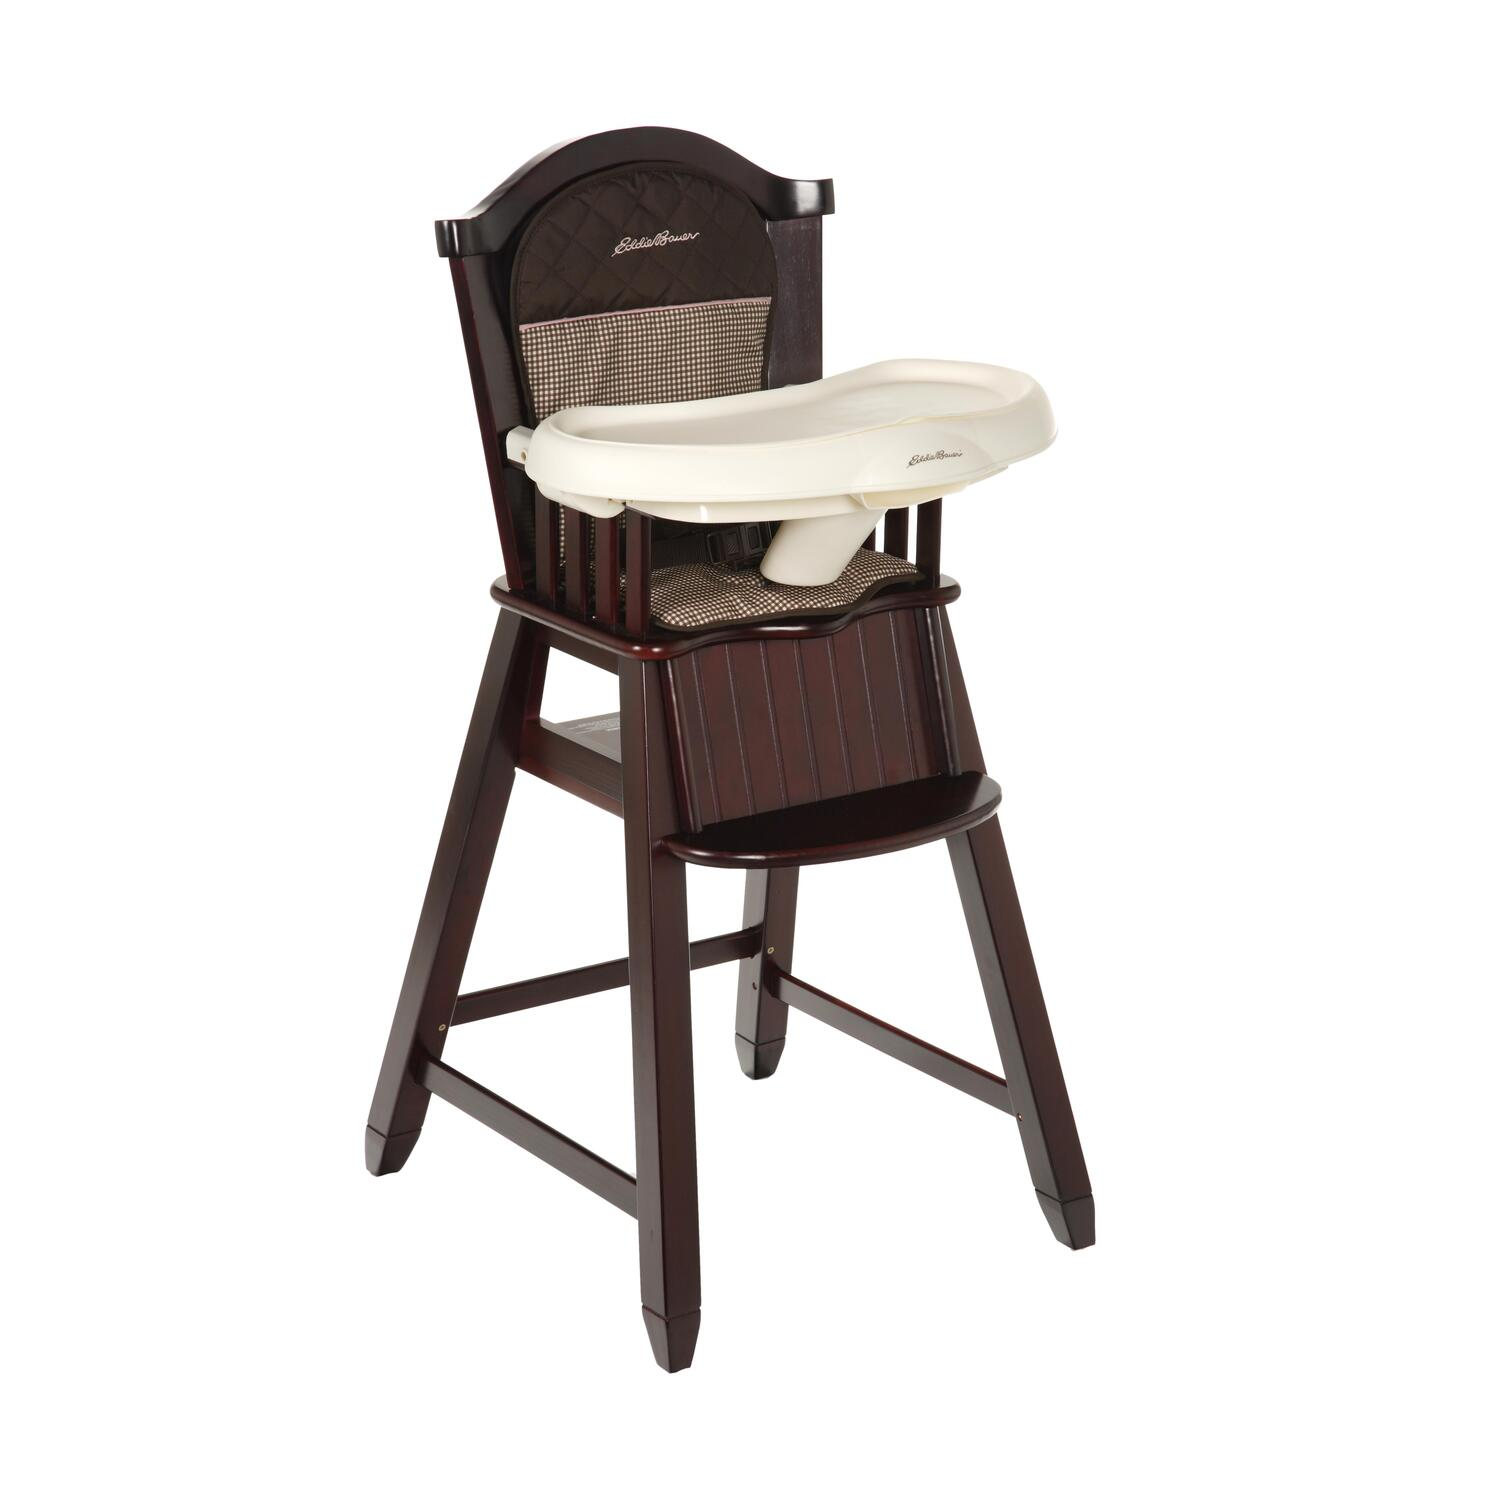 eddie bauer high chairs wooden swivel chair uk wood michelle by oj